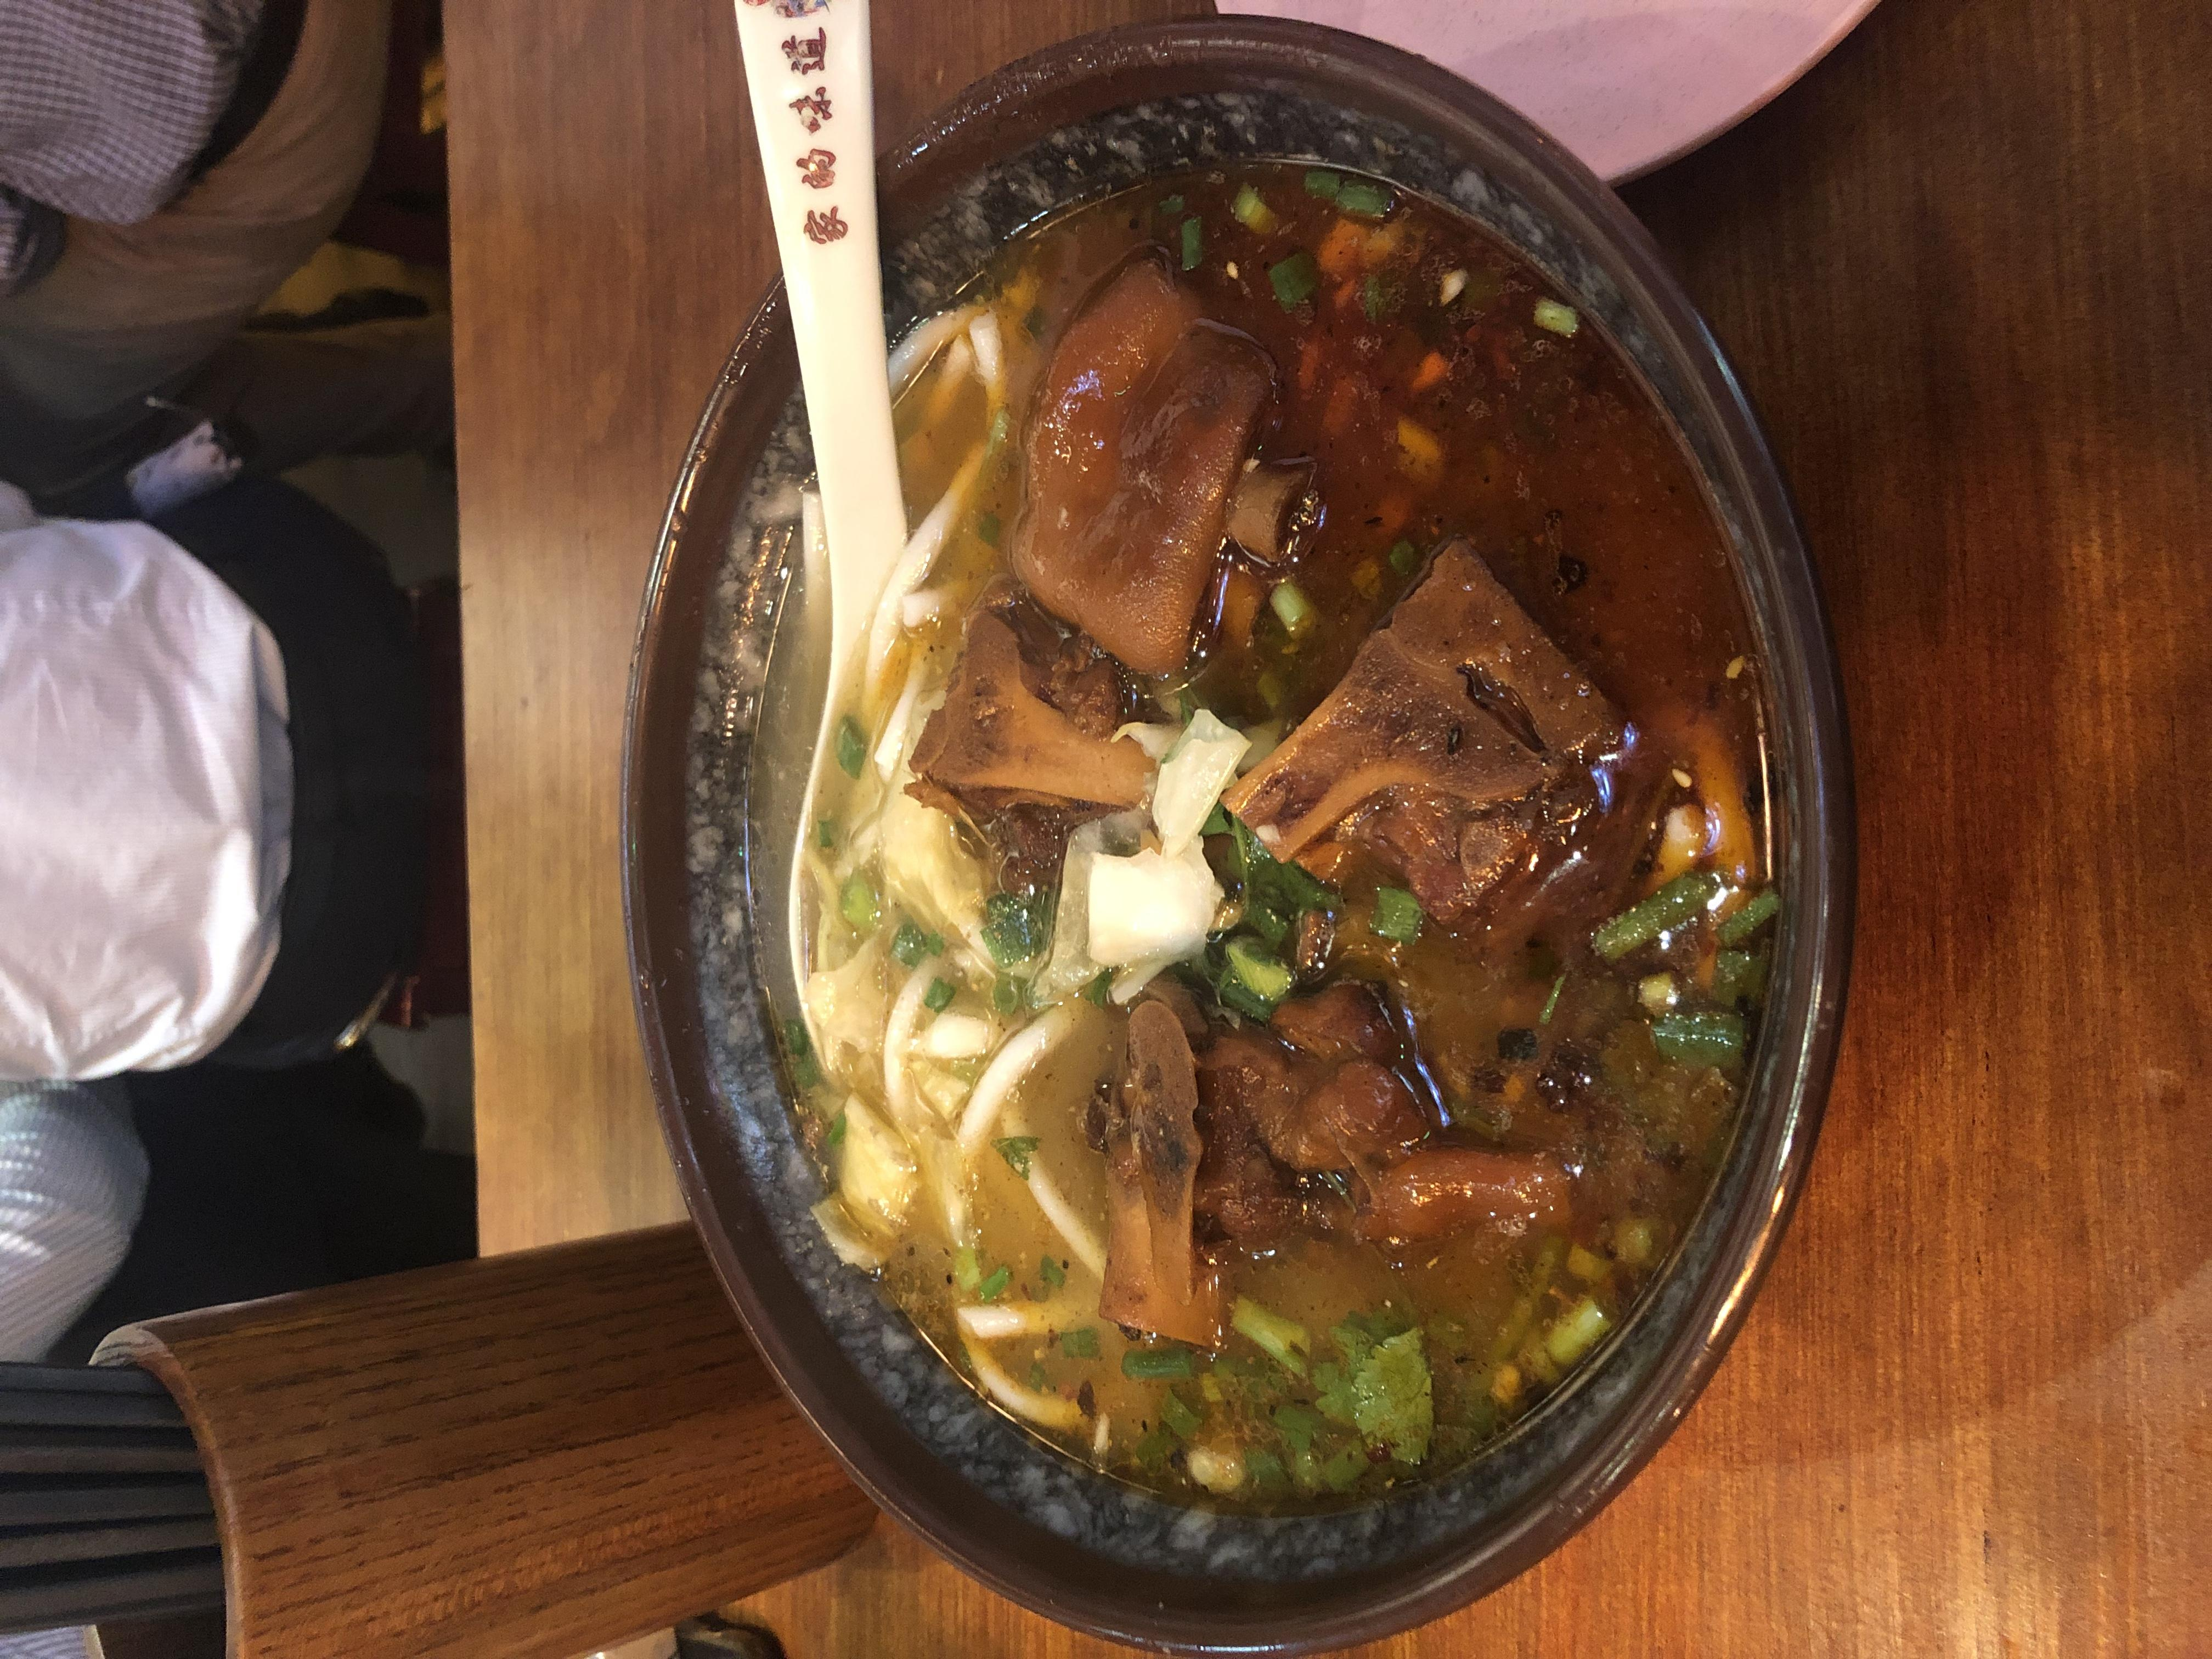 Make Taiwan Beef Noodles & Bubble Tea (homemade pearls) from scratch!